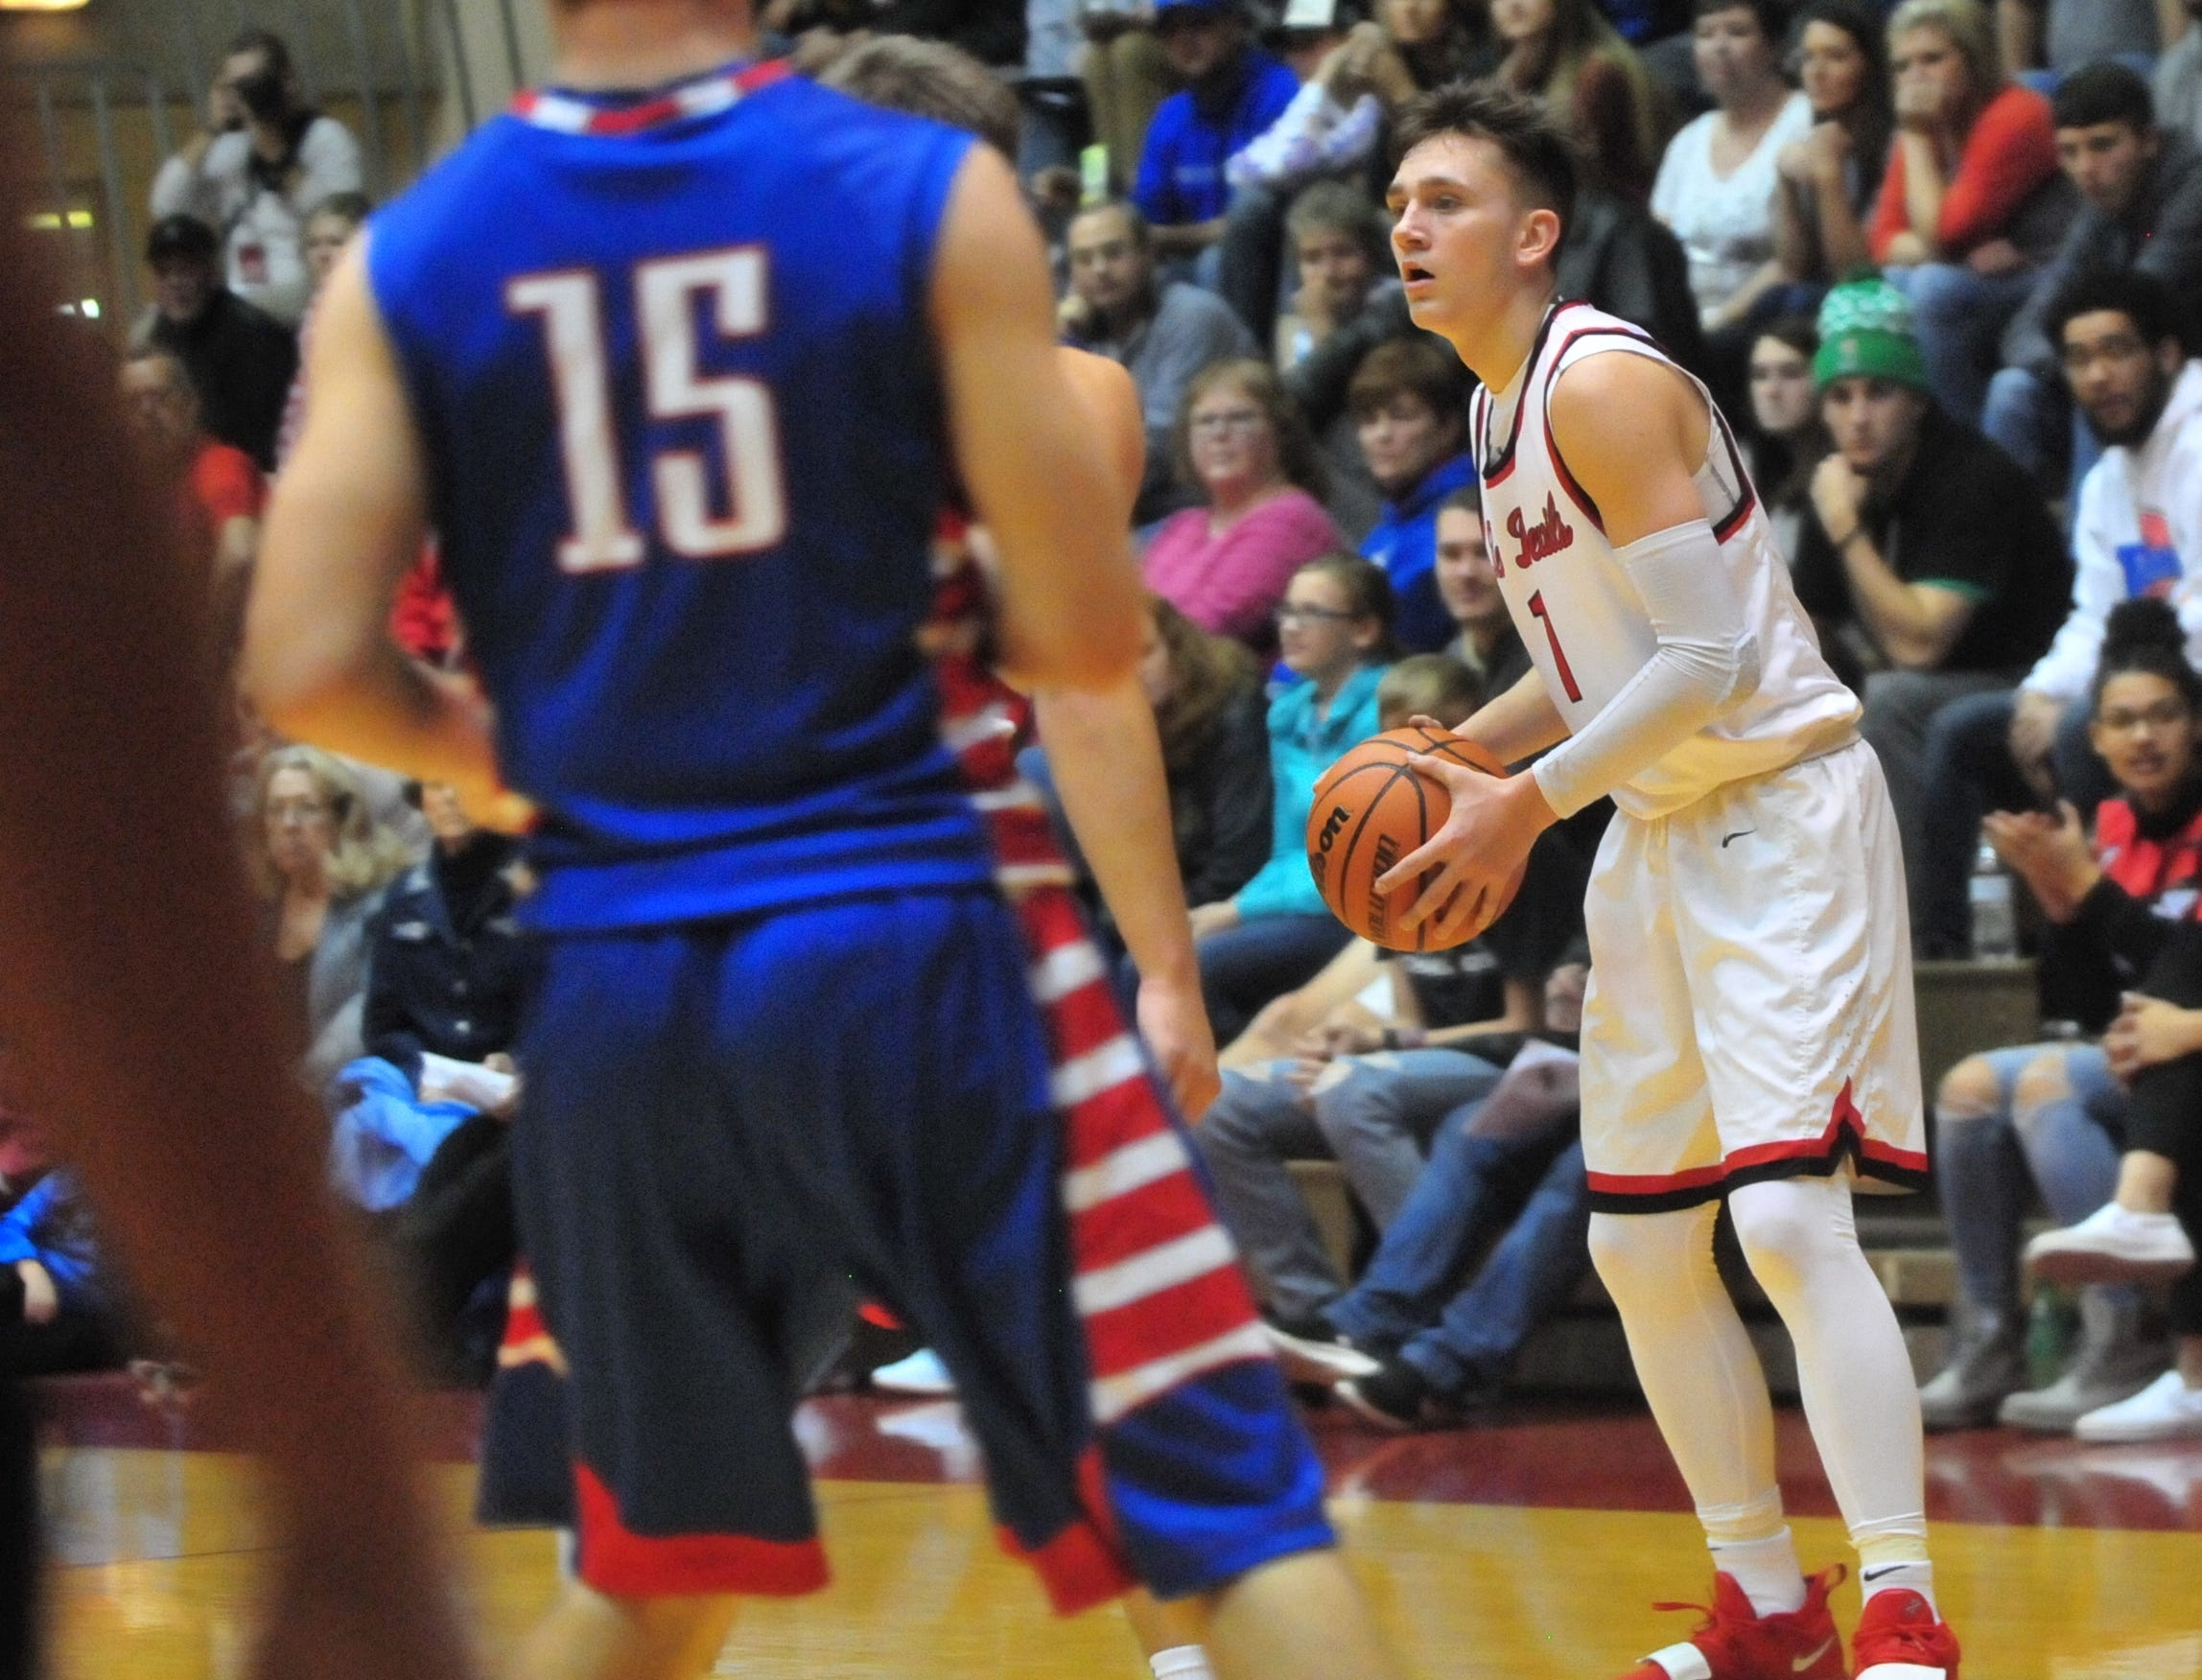 Richmond High School sophomore Andrew Kroft (1) during a boys basketball game against Jay County Saturday, Nov. 24, 2018 at Richmond High School's Tiernan Center.